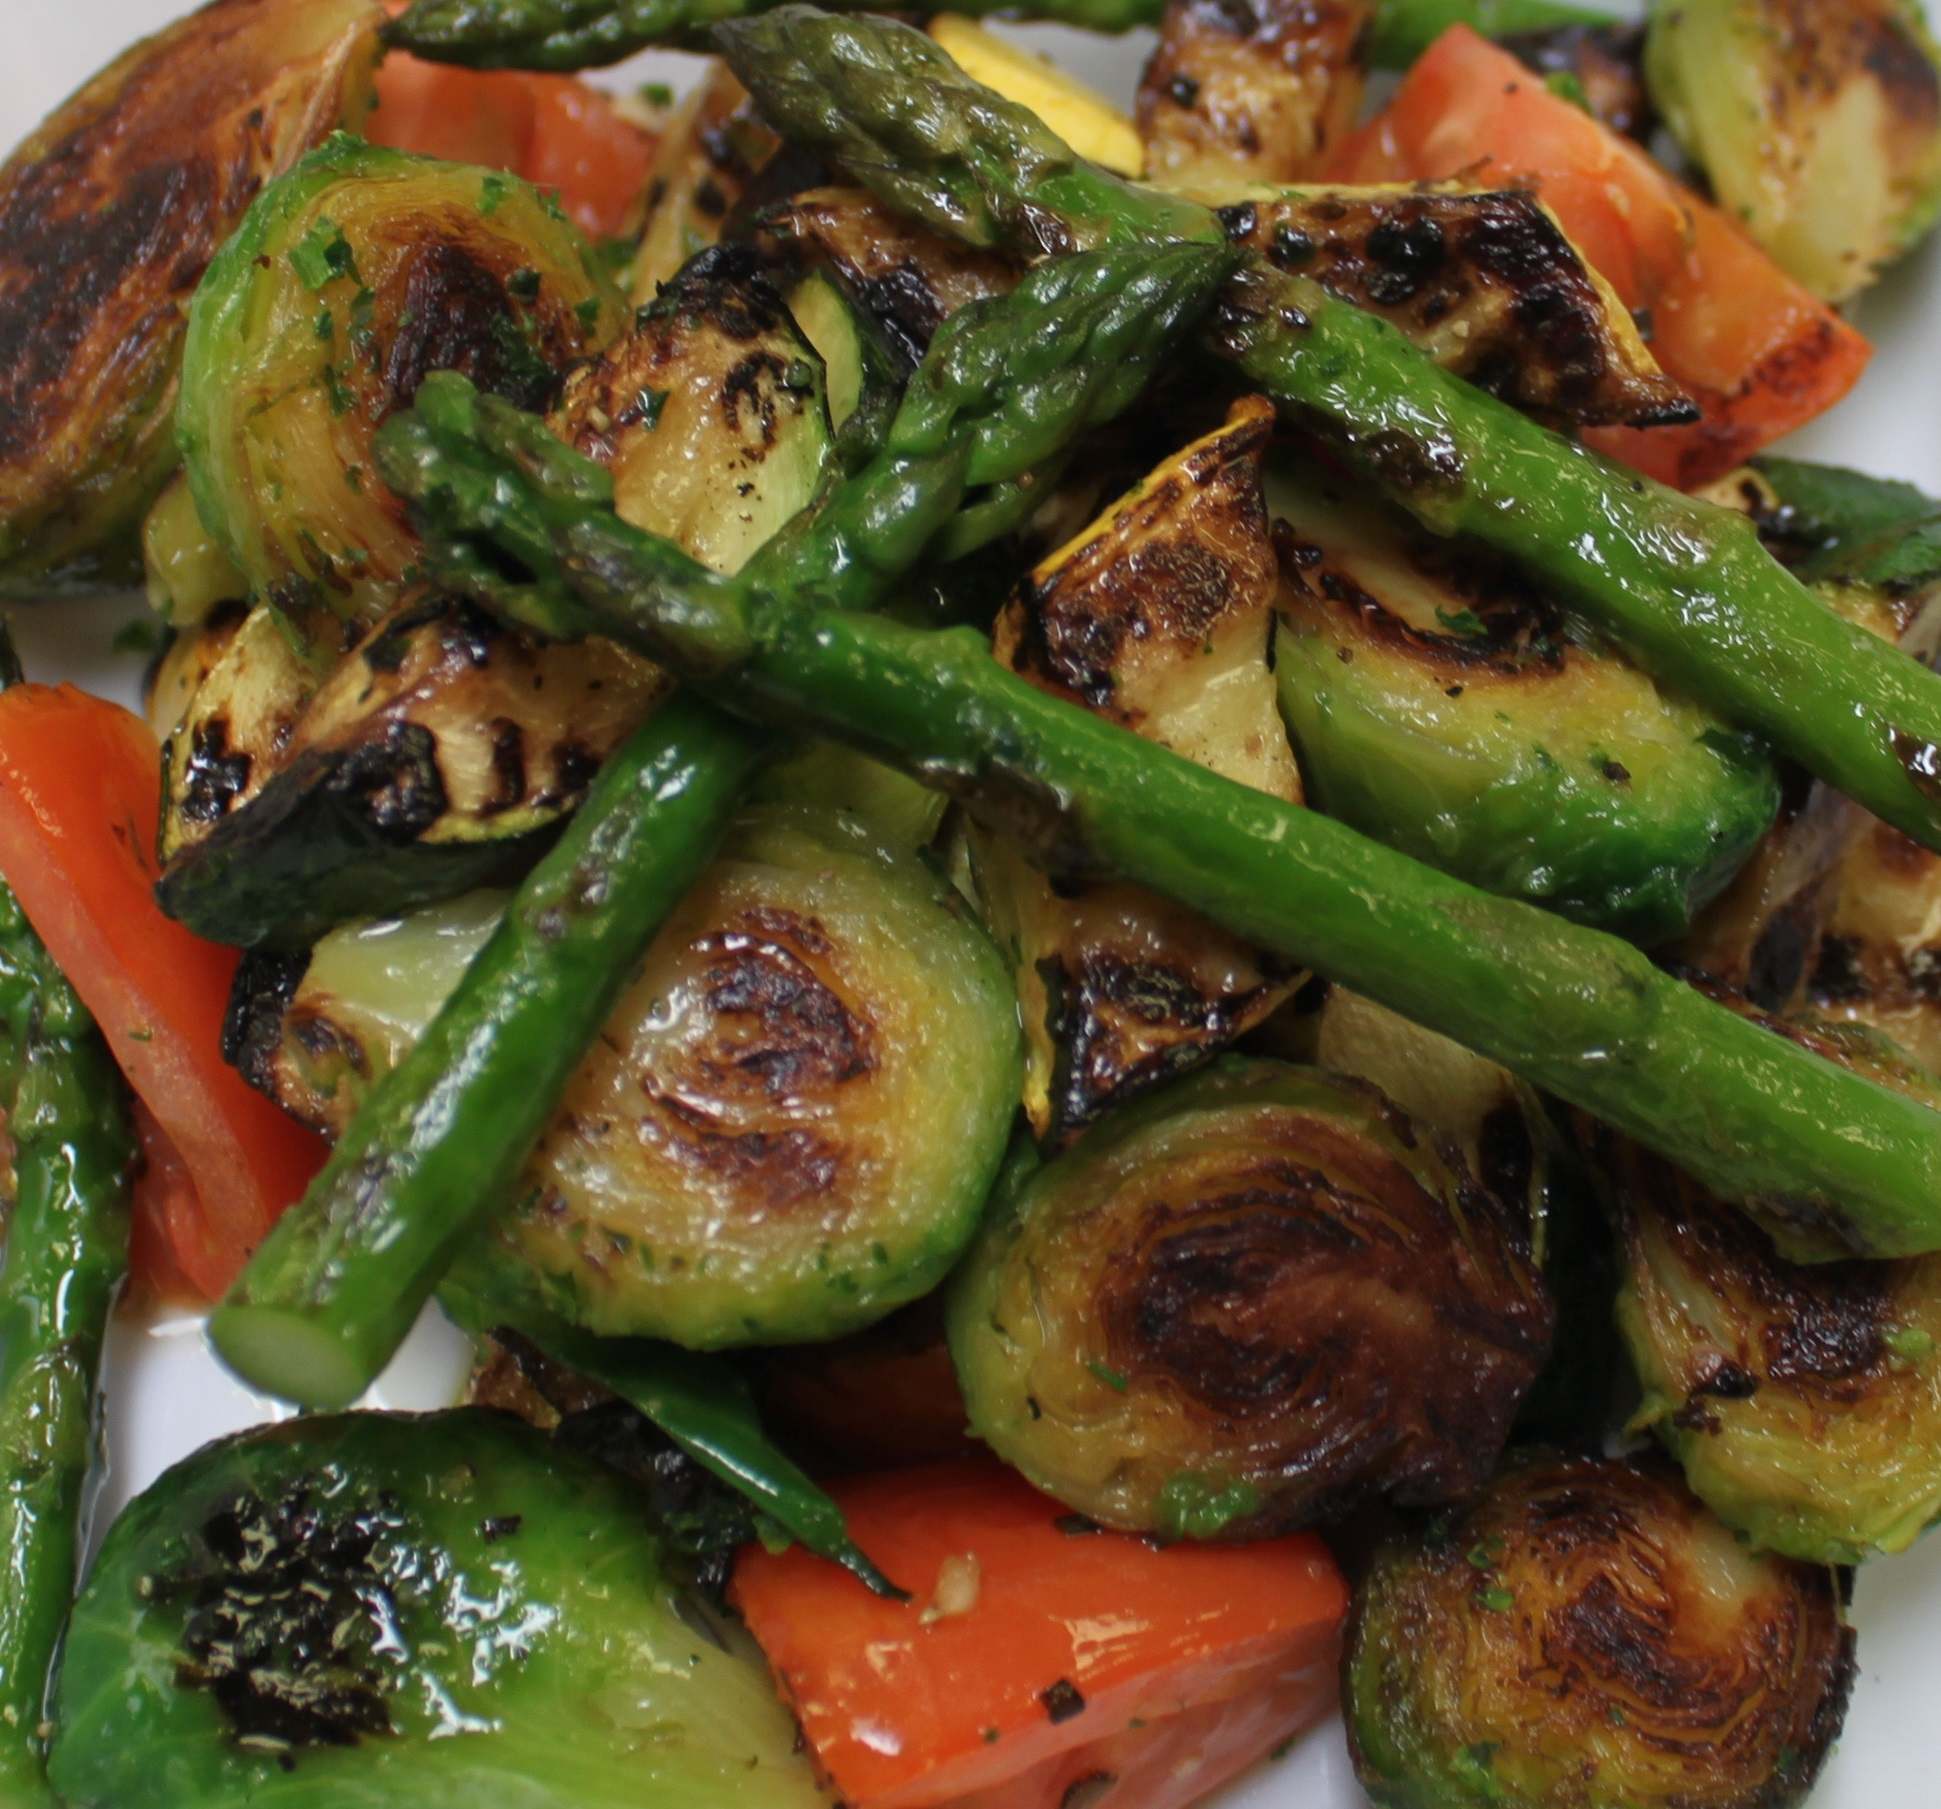 Grilled Vegetable Medley